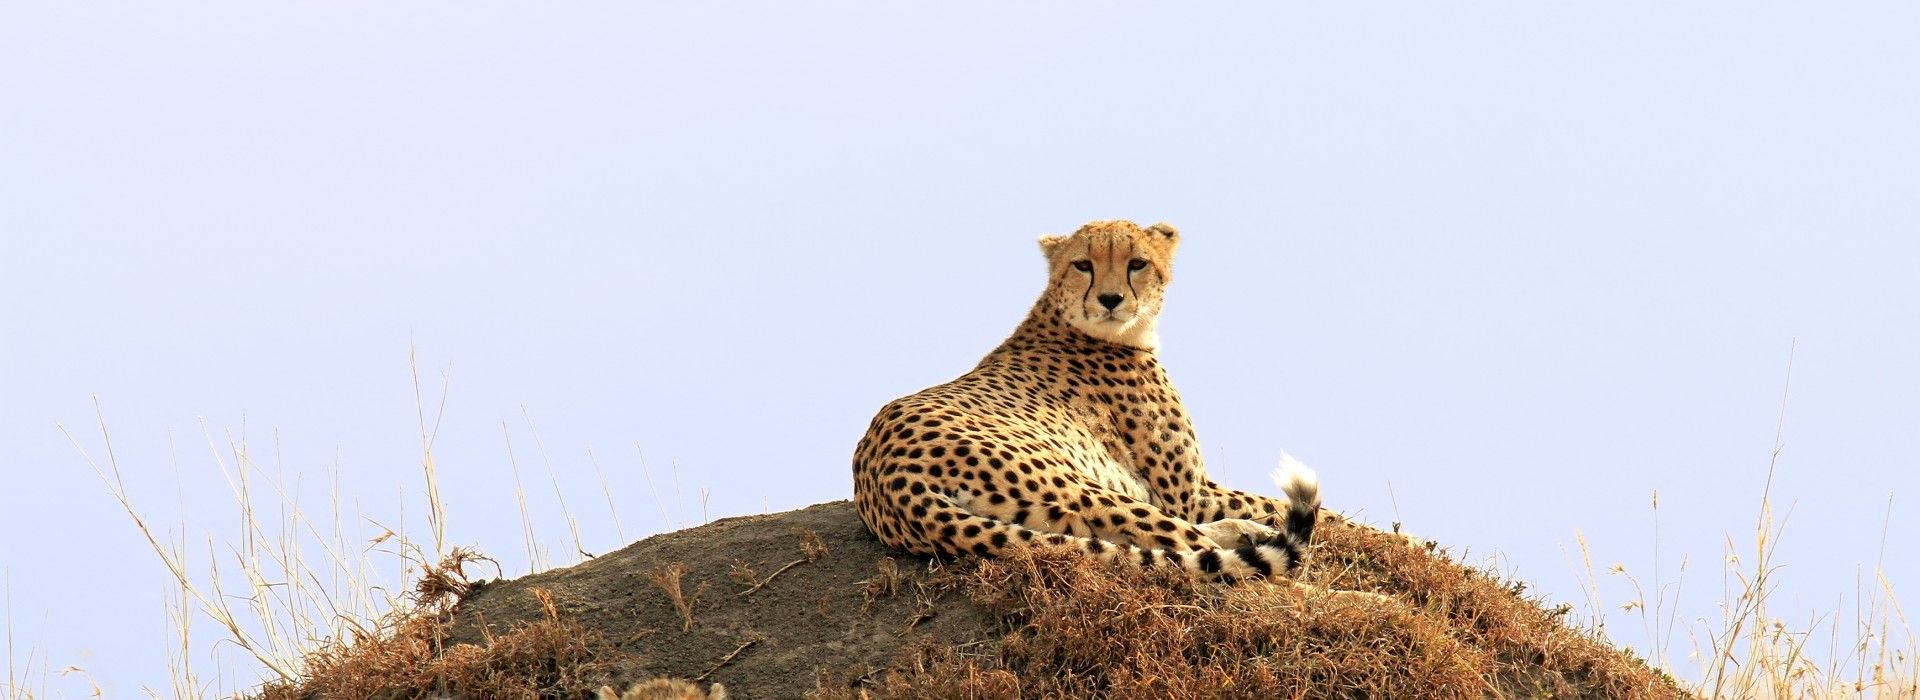 Sightseeing, attractions, culture and history Tours in Kenya